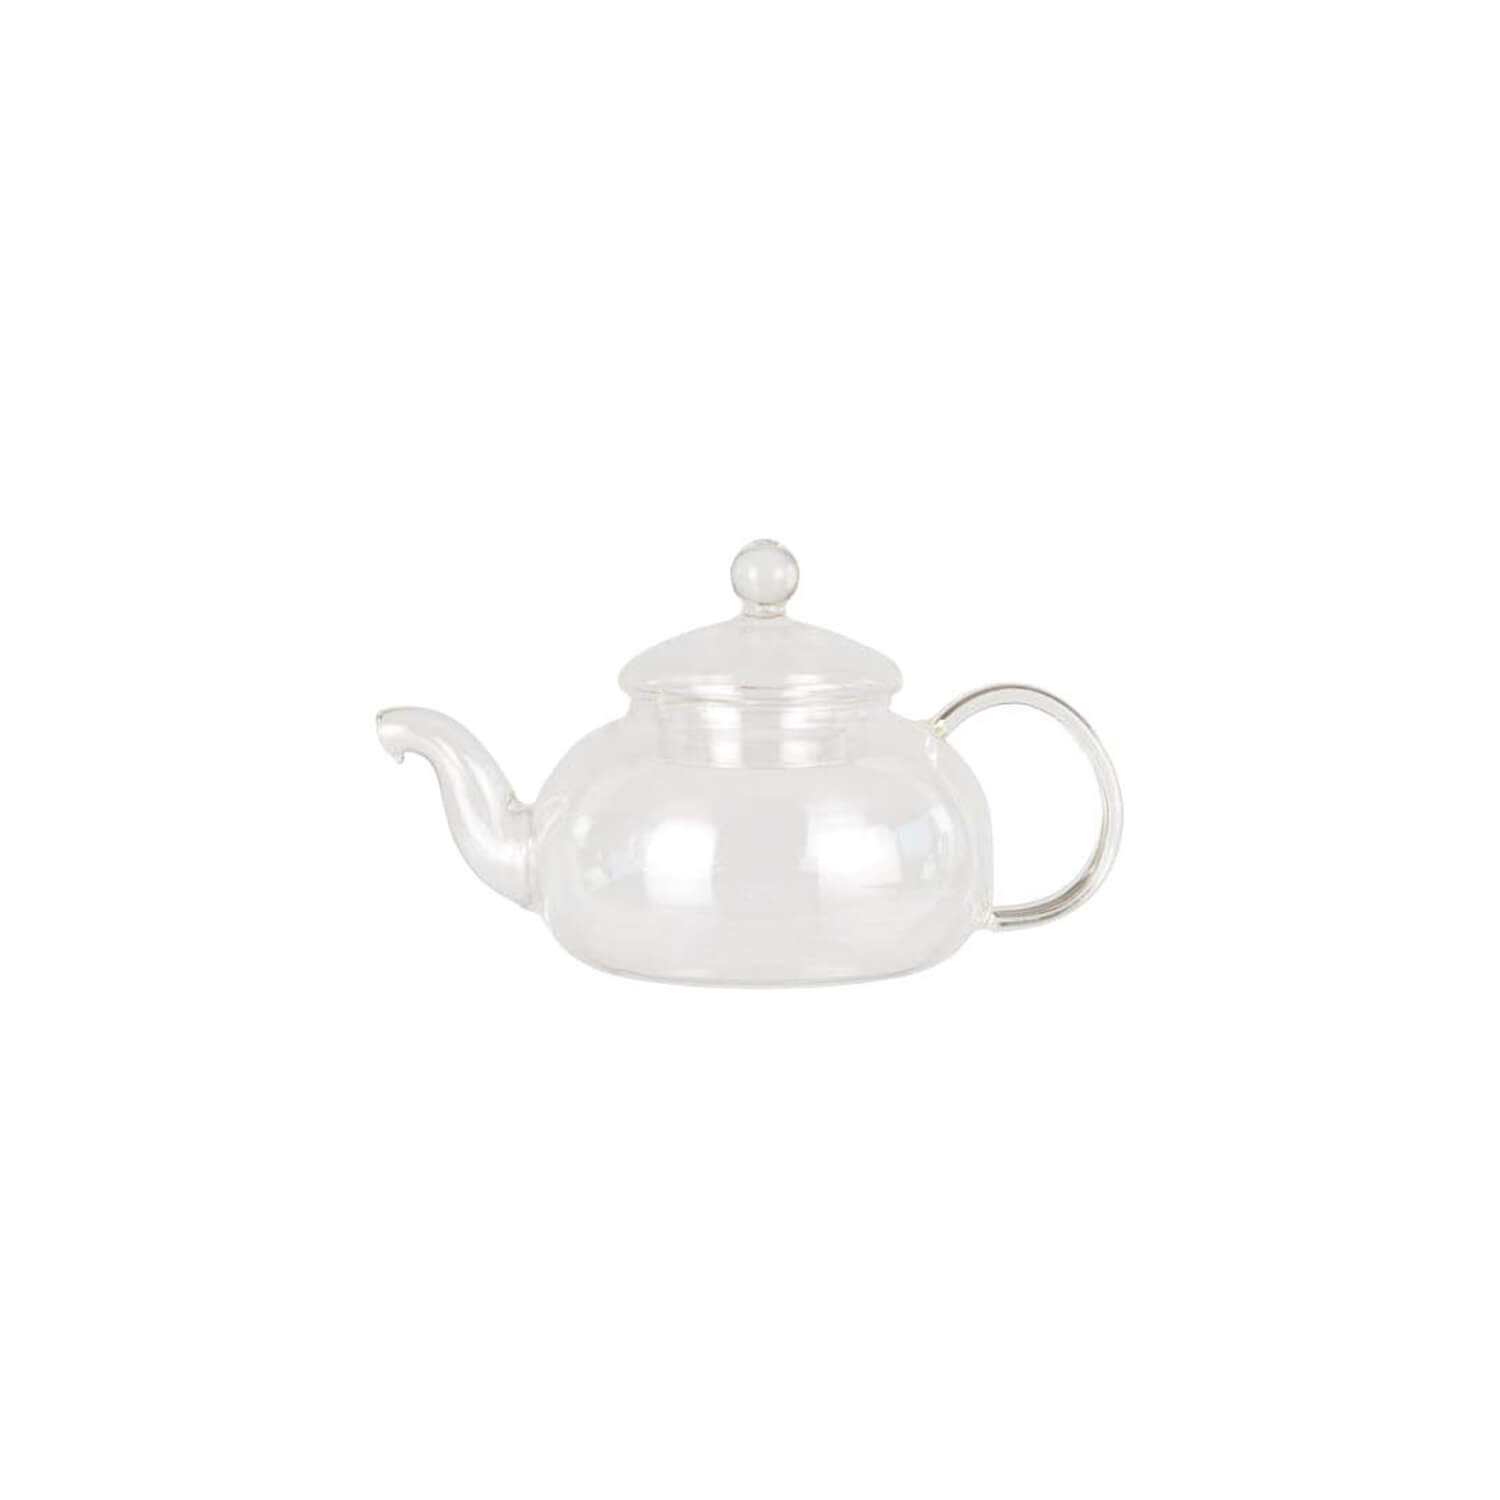 Theepot - Cosy & Trendy - Theekan - Glas - 400 ml